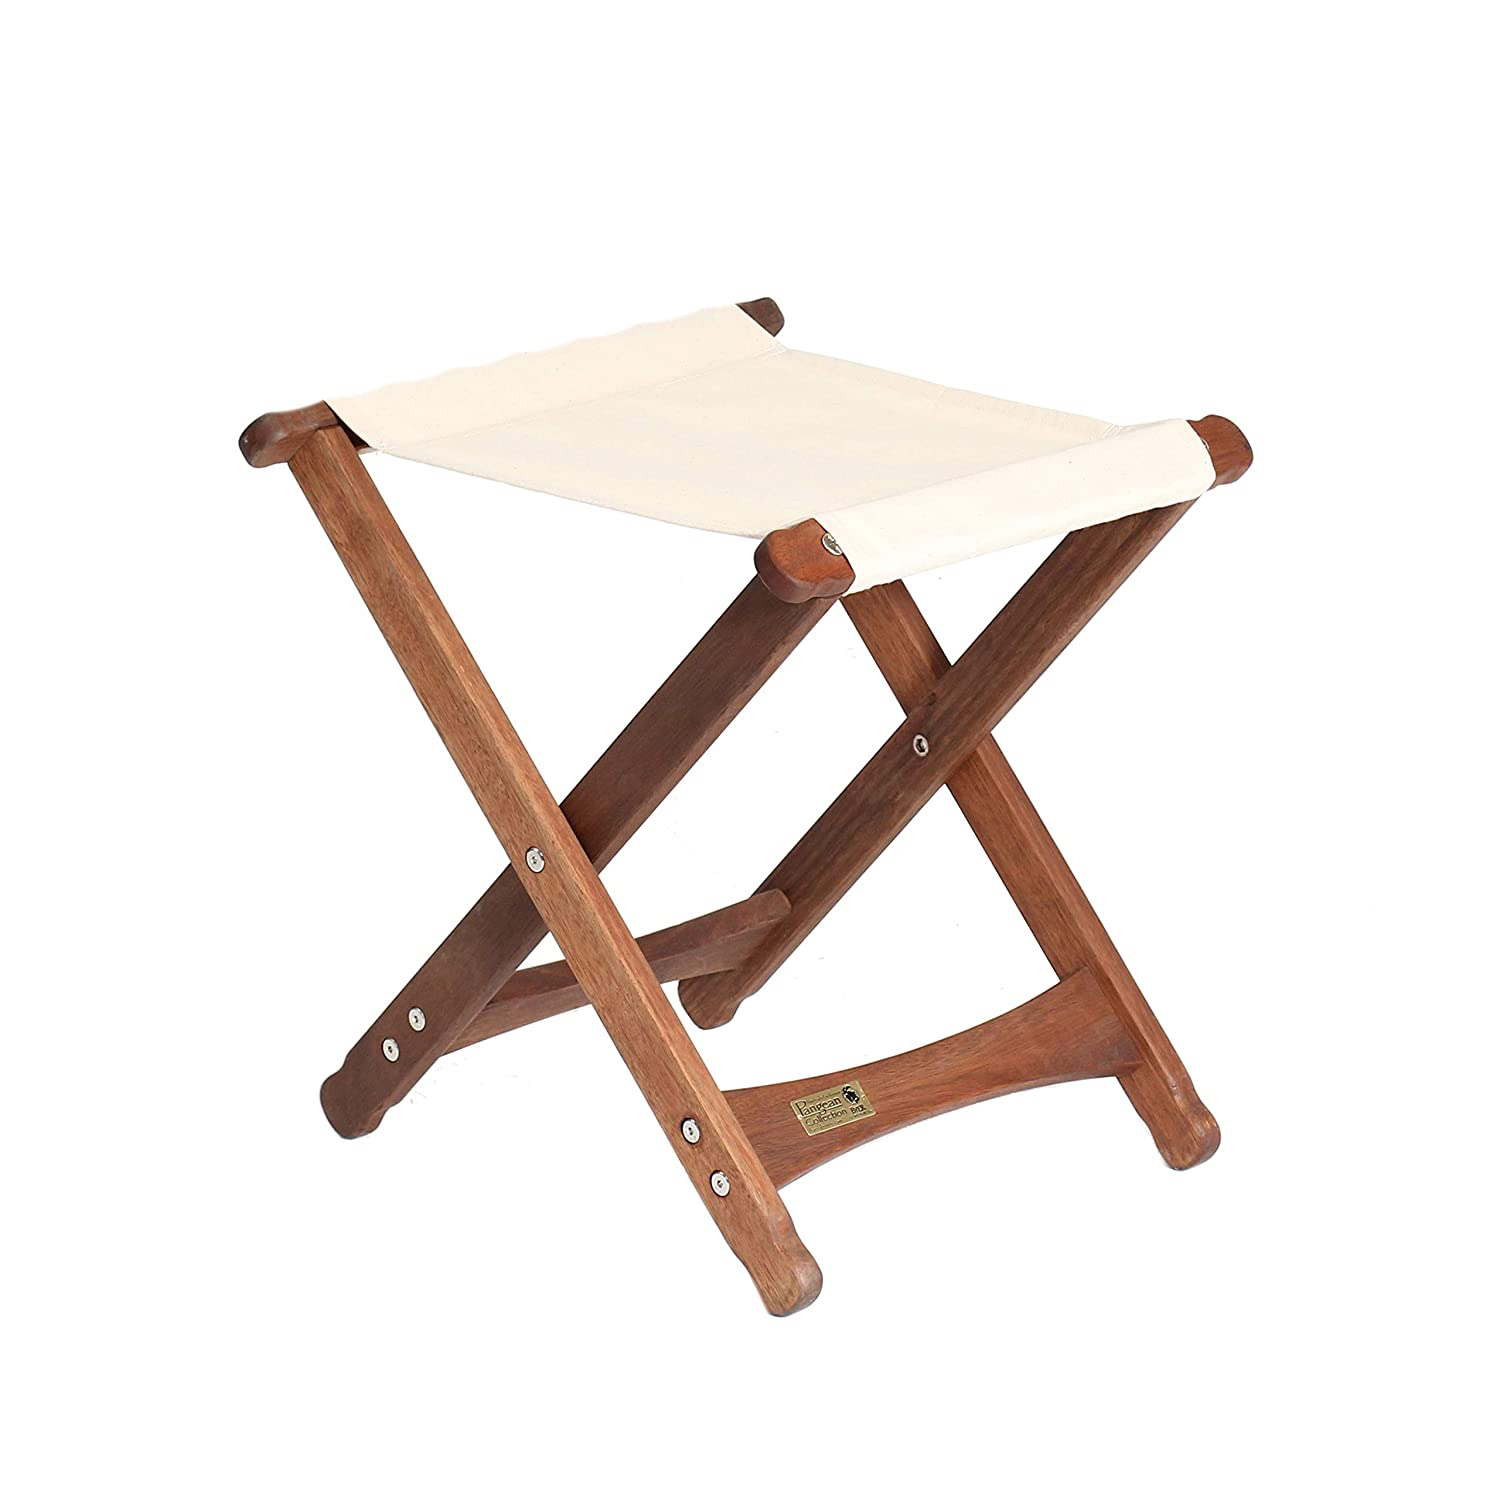 Terrific Byer Of Maine Pangean Folding Stool Hardwood Easy To Fold And Carry Wood Folding Stool Canvas Camp Stool Perfect For Camping Matches All Camellatalisay Diy Chair Ideas Camellatalisaycom